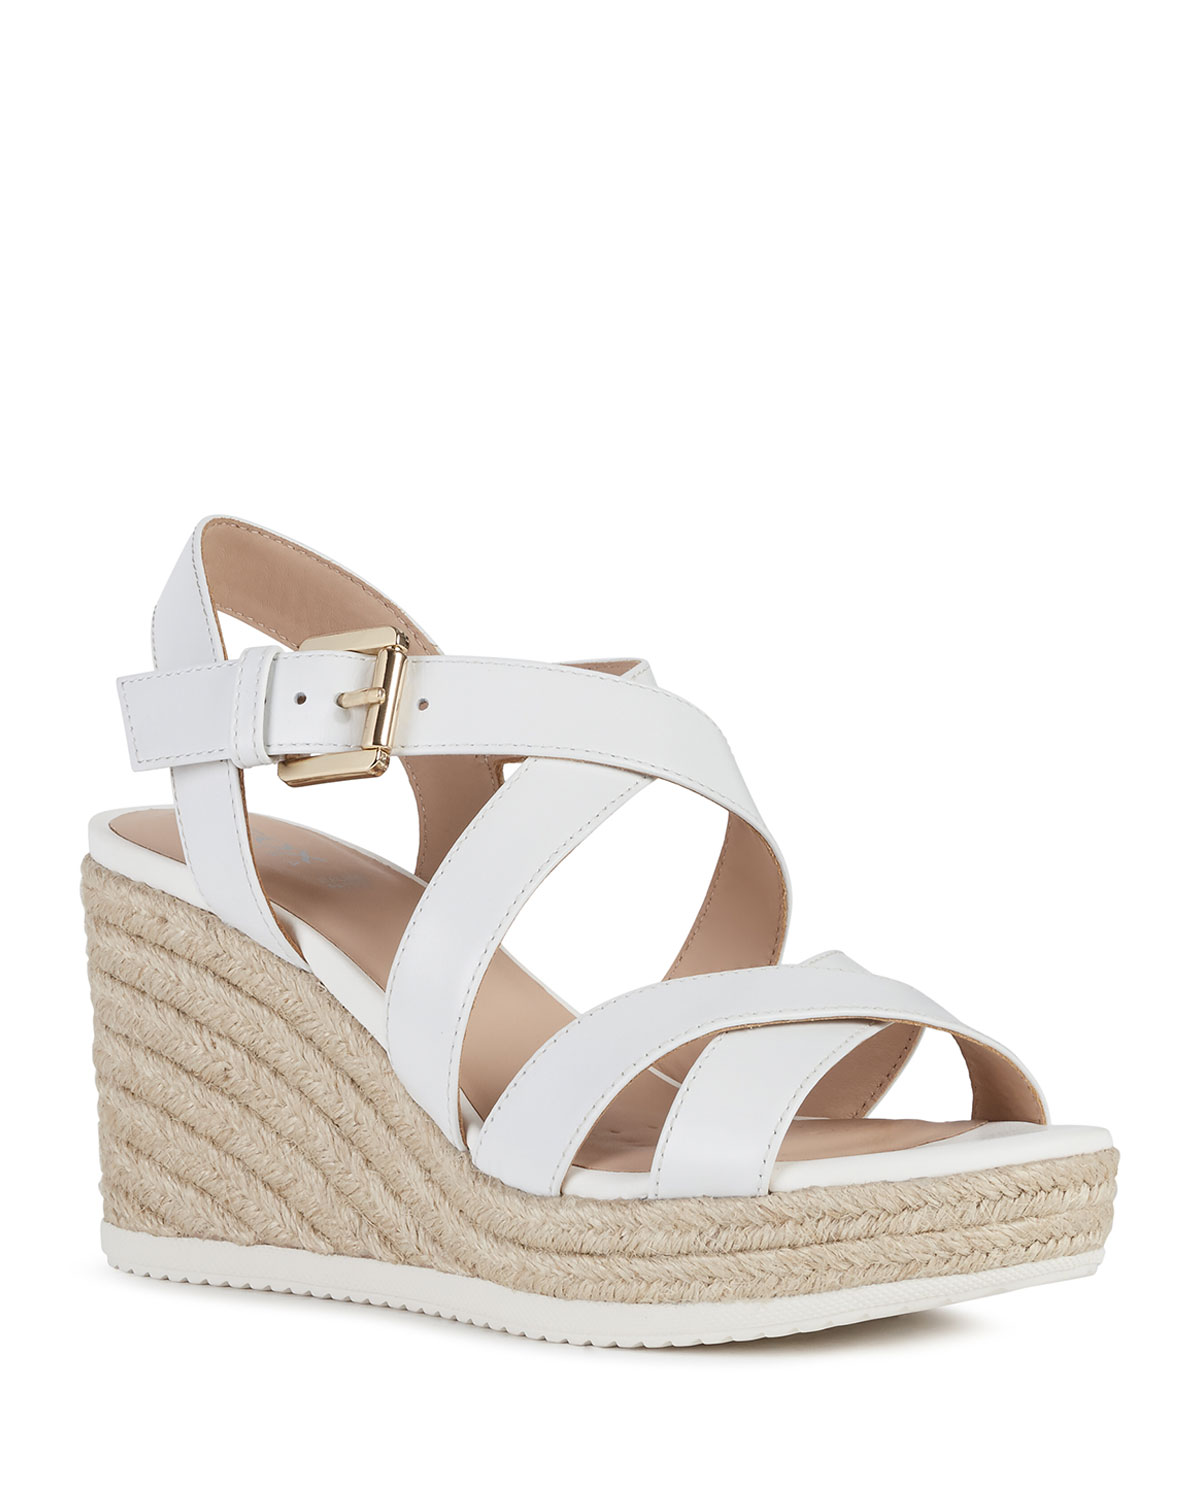 Geox CRISSCROSS LEATHER WEDGE ESPADRILLE SANDALS, WHITE